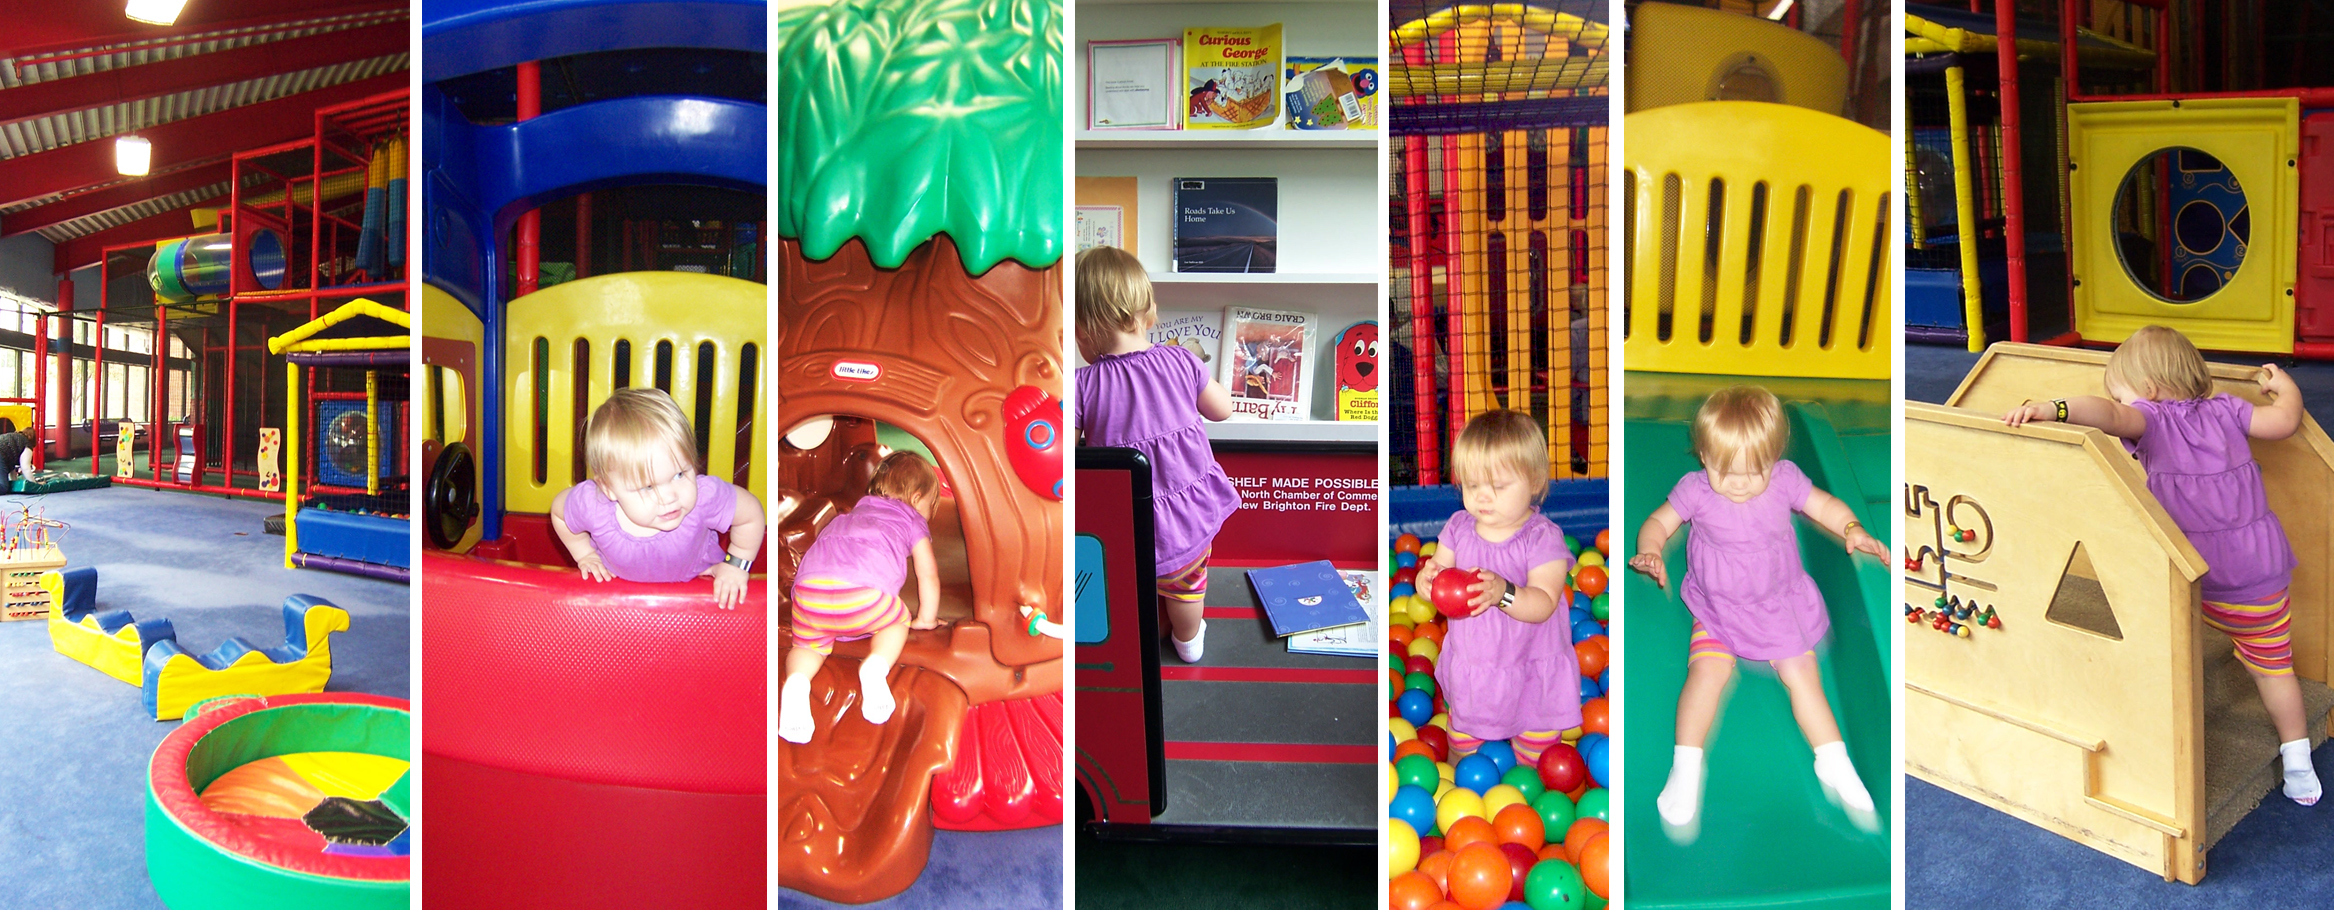 Where to go with kids when its too hot cold rainy outside check out eagles nest indoor playground at 400 10th street northwest new brighton mn 55112 in the northeast corner of old hwy 8 and 10th st nw sciox Gallery